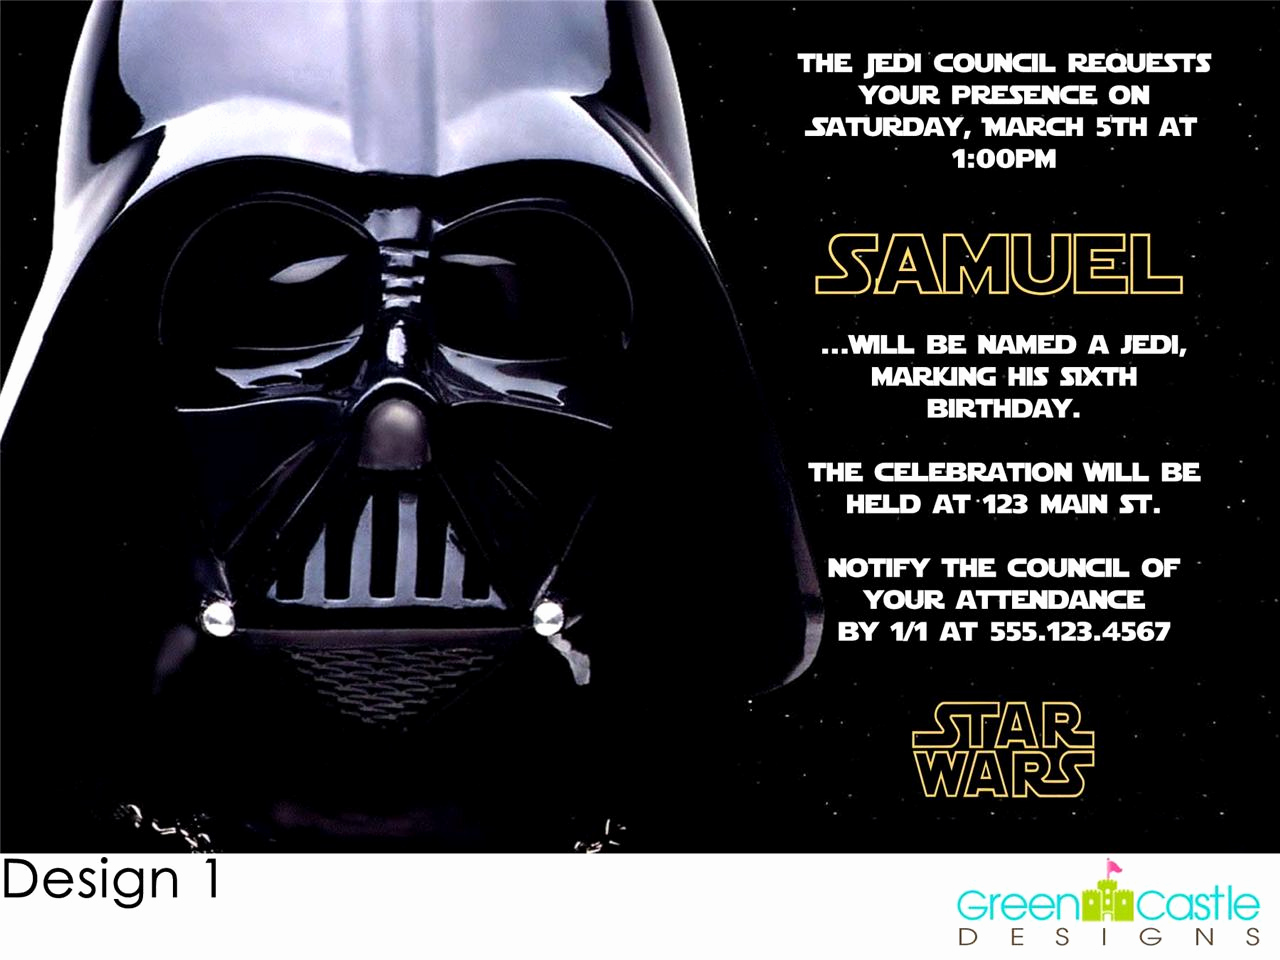 Star Wars Party Invitation Templates Inspirational Free Star Wars Birthday Party Invitations Templates